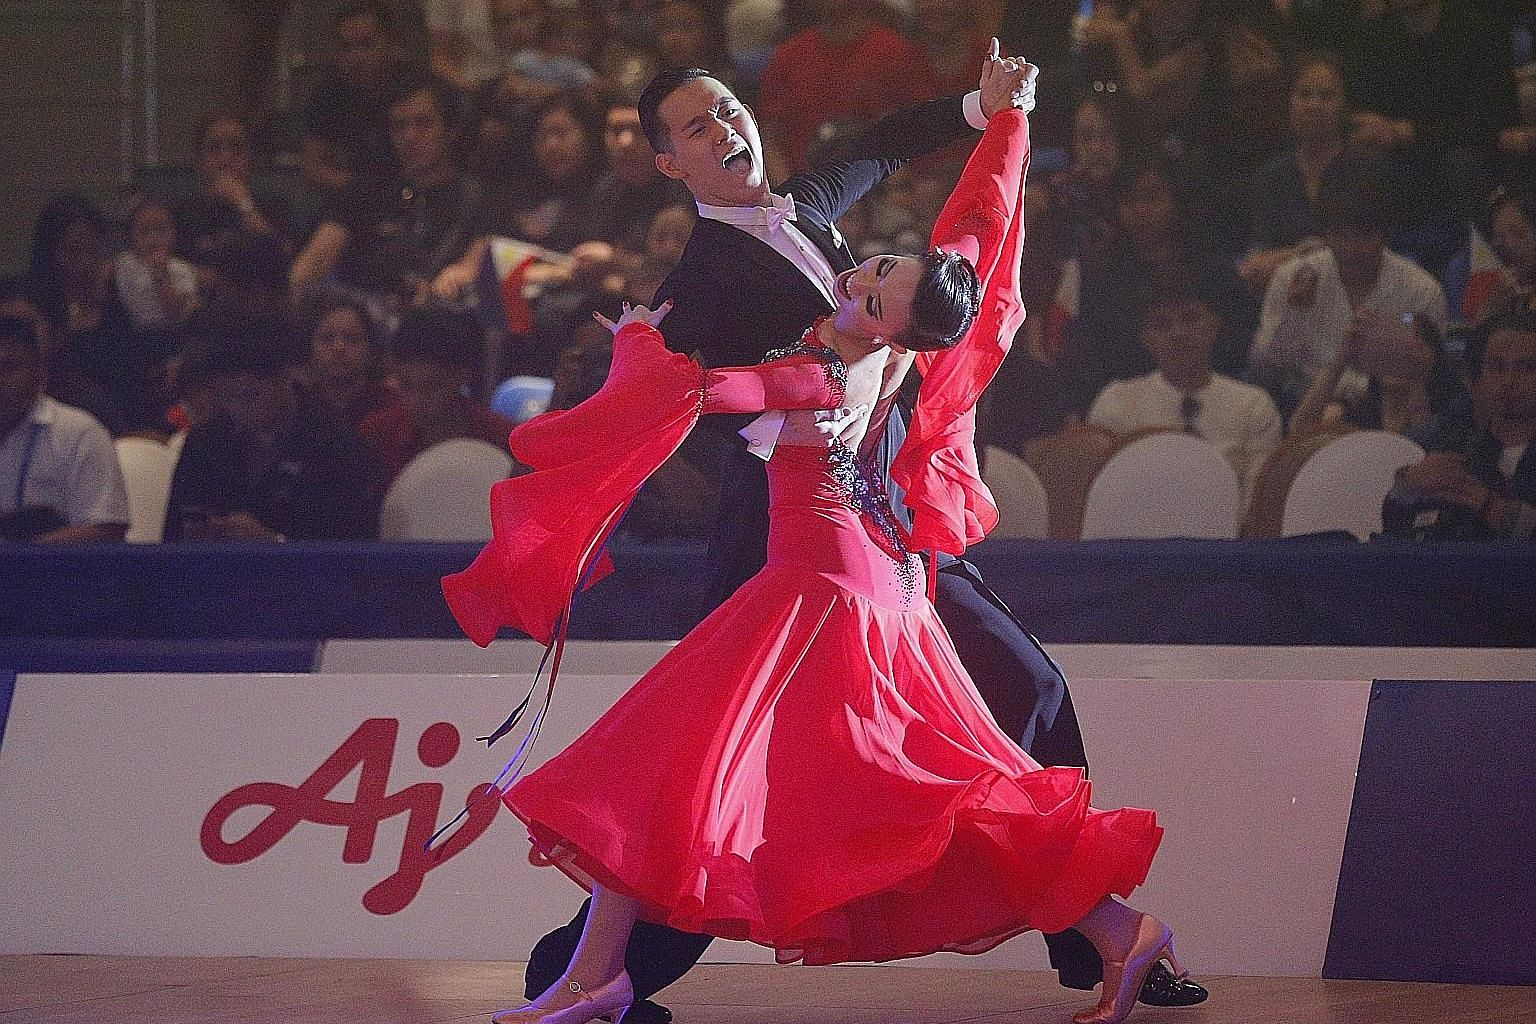 Jerome and Rachel Teo performing in the standard slow foxtrot, which won them a silver medal, after they had waltzed their way to two bronzes, one of which was Singapore's first medal at a SEA Games dancesport event.